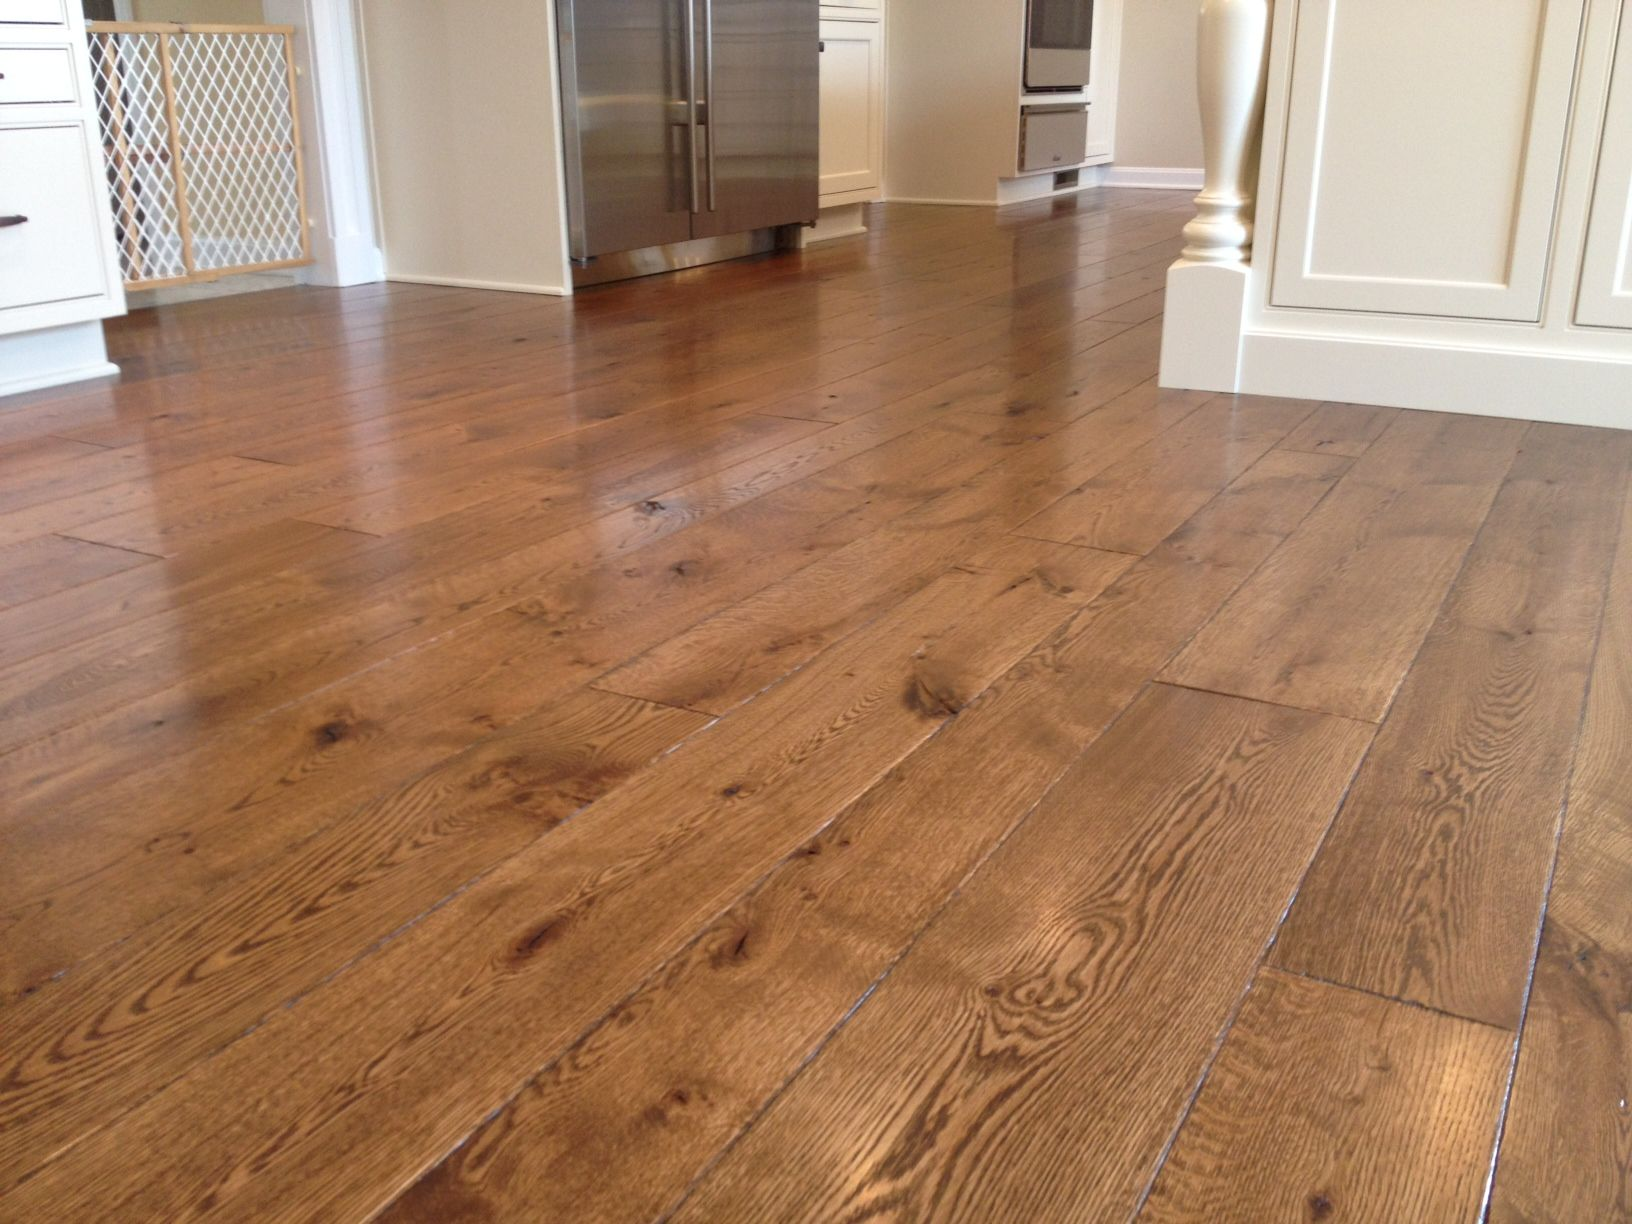 Unfinished Quarter Sawn Red Oak Flooring Carpet Vidalondon